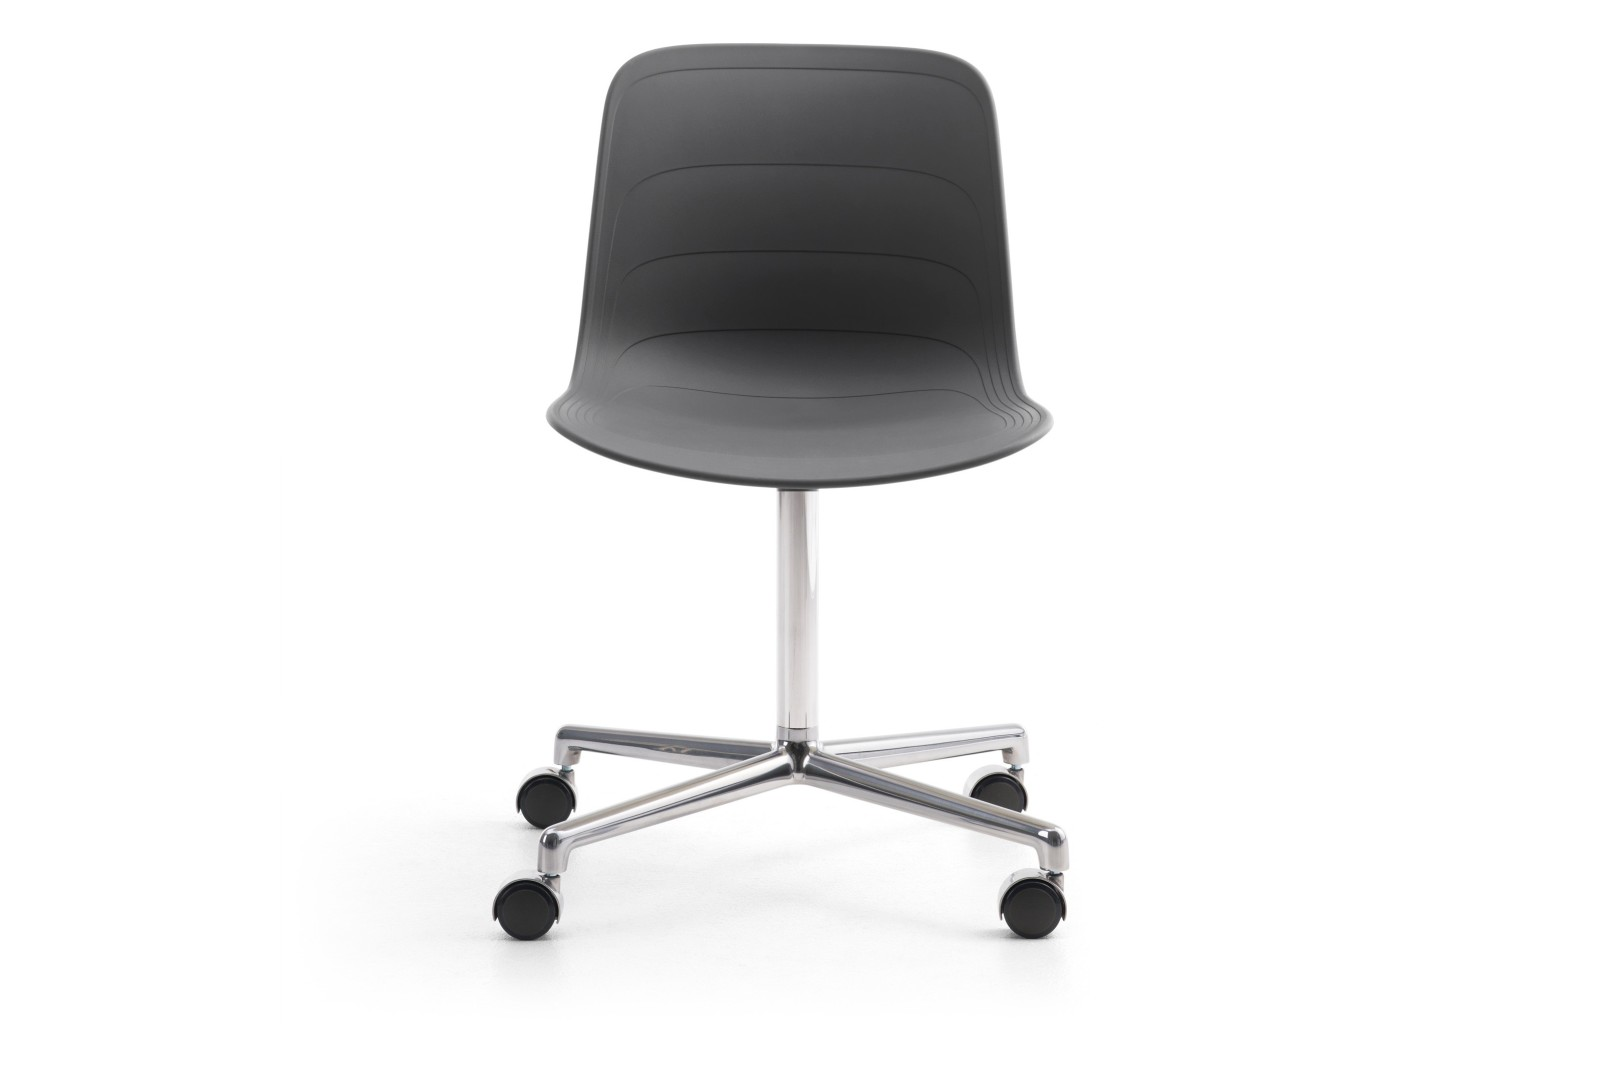 Grade Swivel Chair Polished 4 Star Base on Castors White/Grey 895 RAL 9002